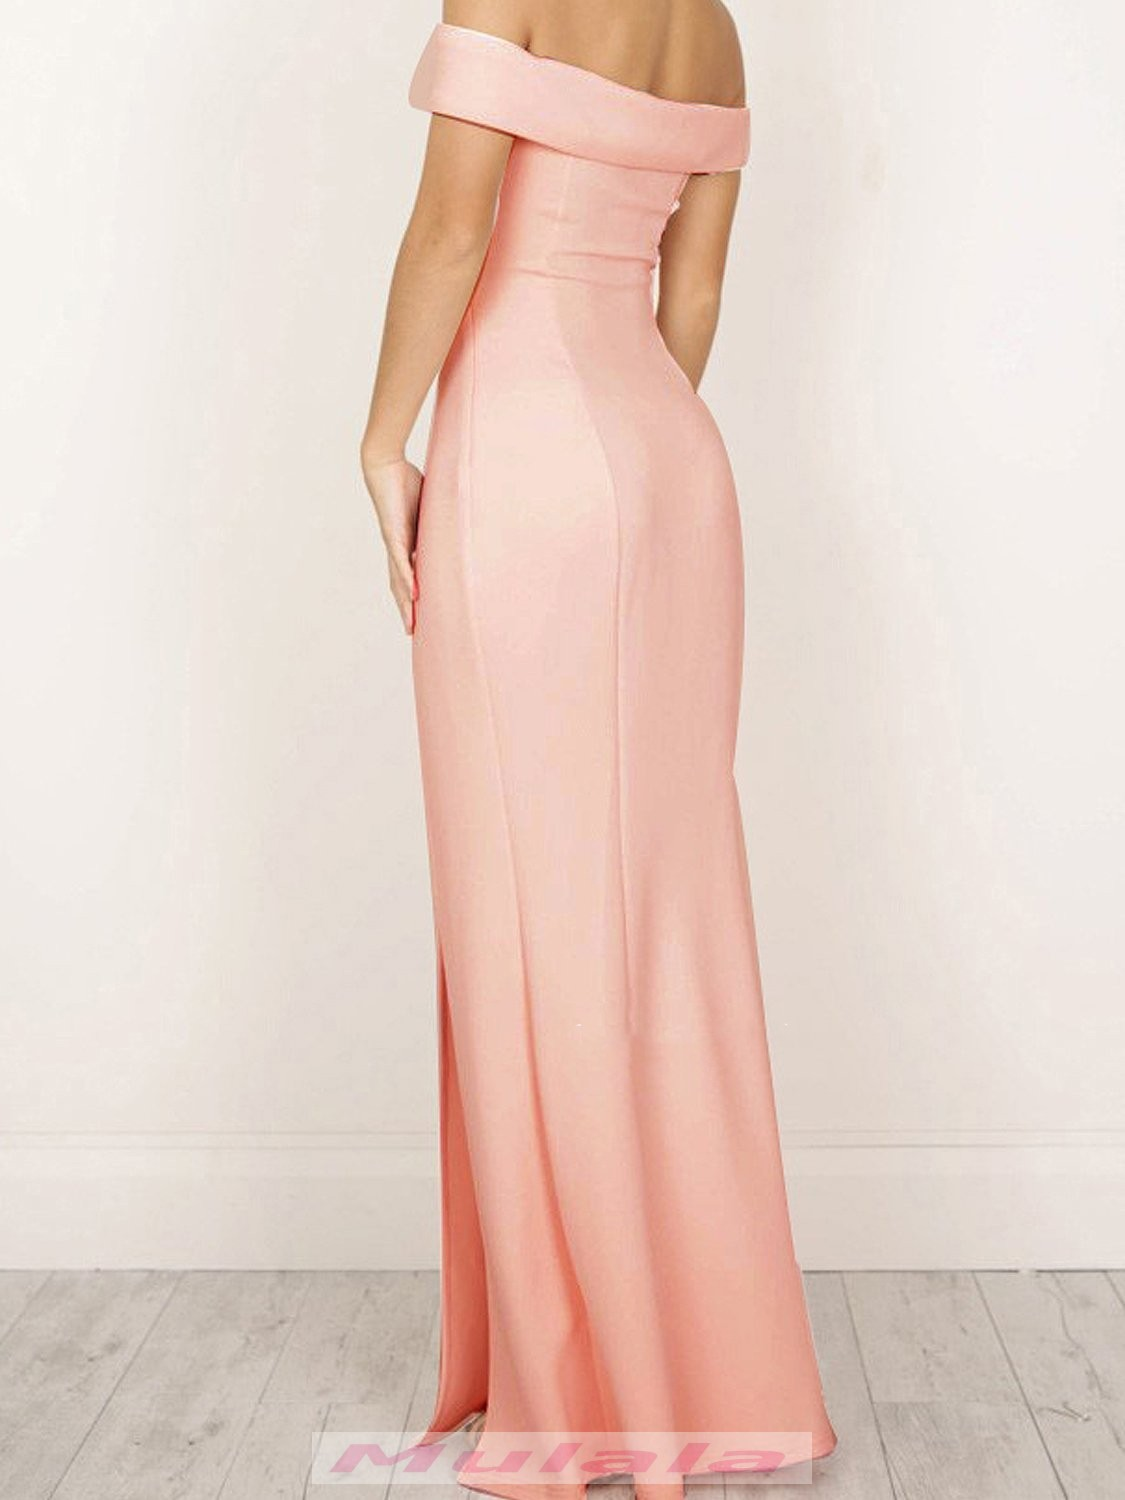 a65dcba54f5 Pink Off Shoulder Prom Dresses Side Split Mermaid Evening Dress Ankle Length  Party Gowns 2018